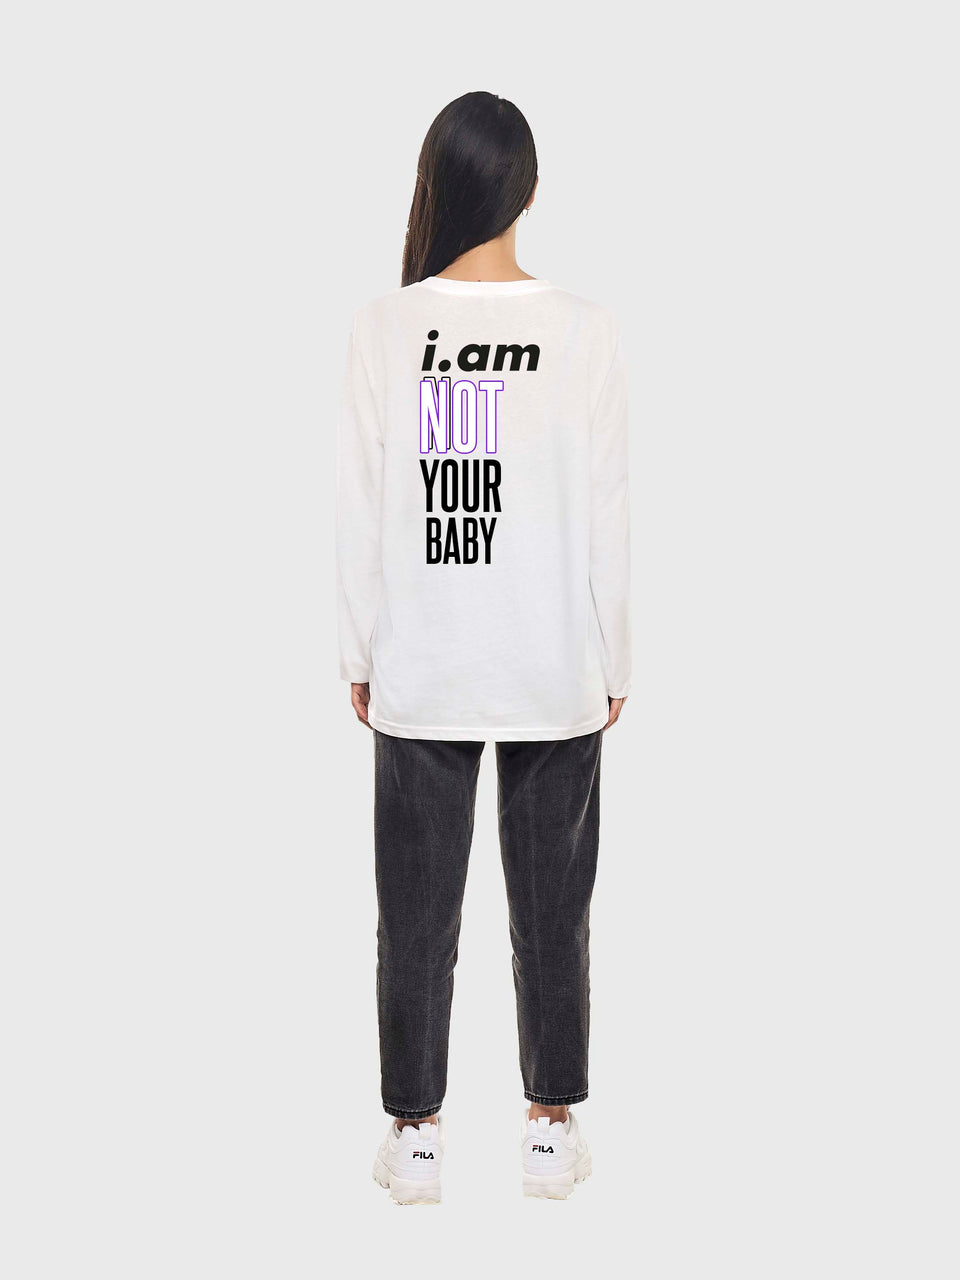 Not your baby - white - unisex Long sleeve T